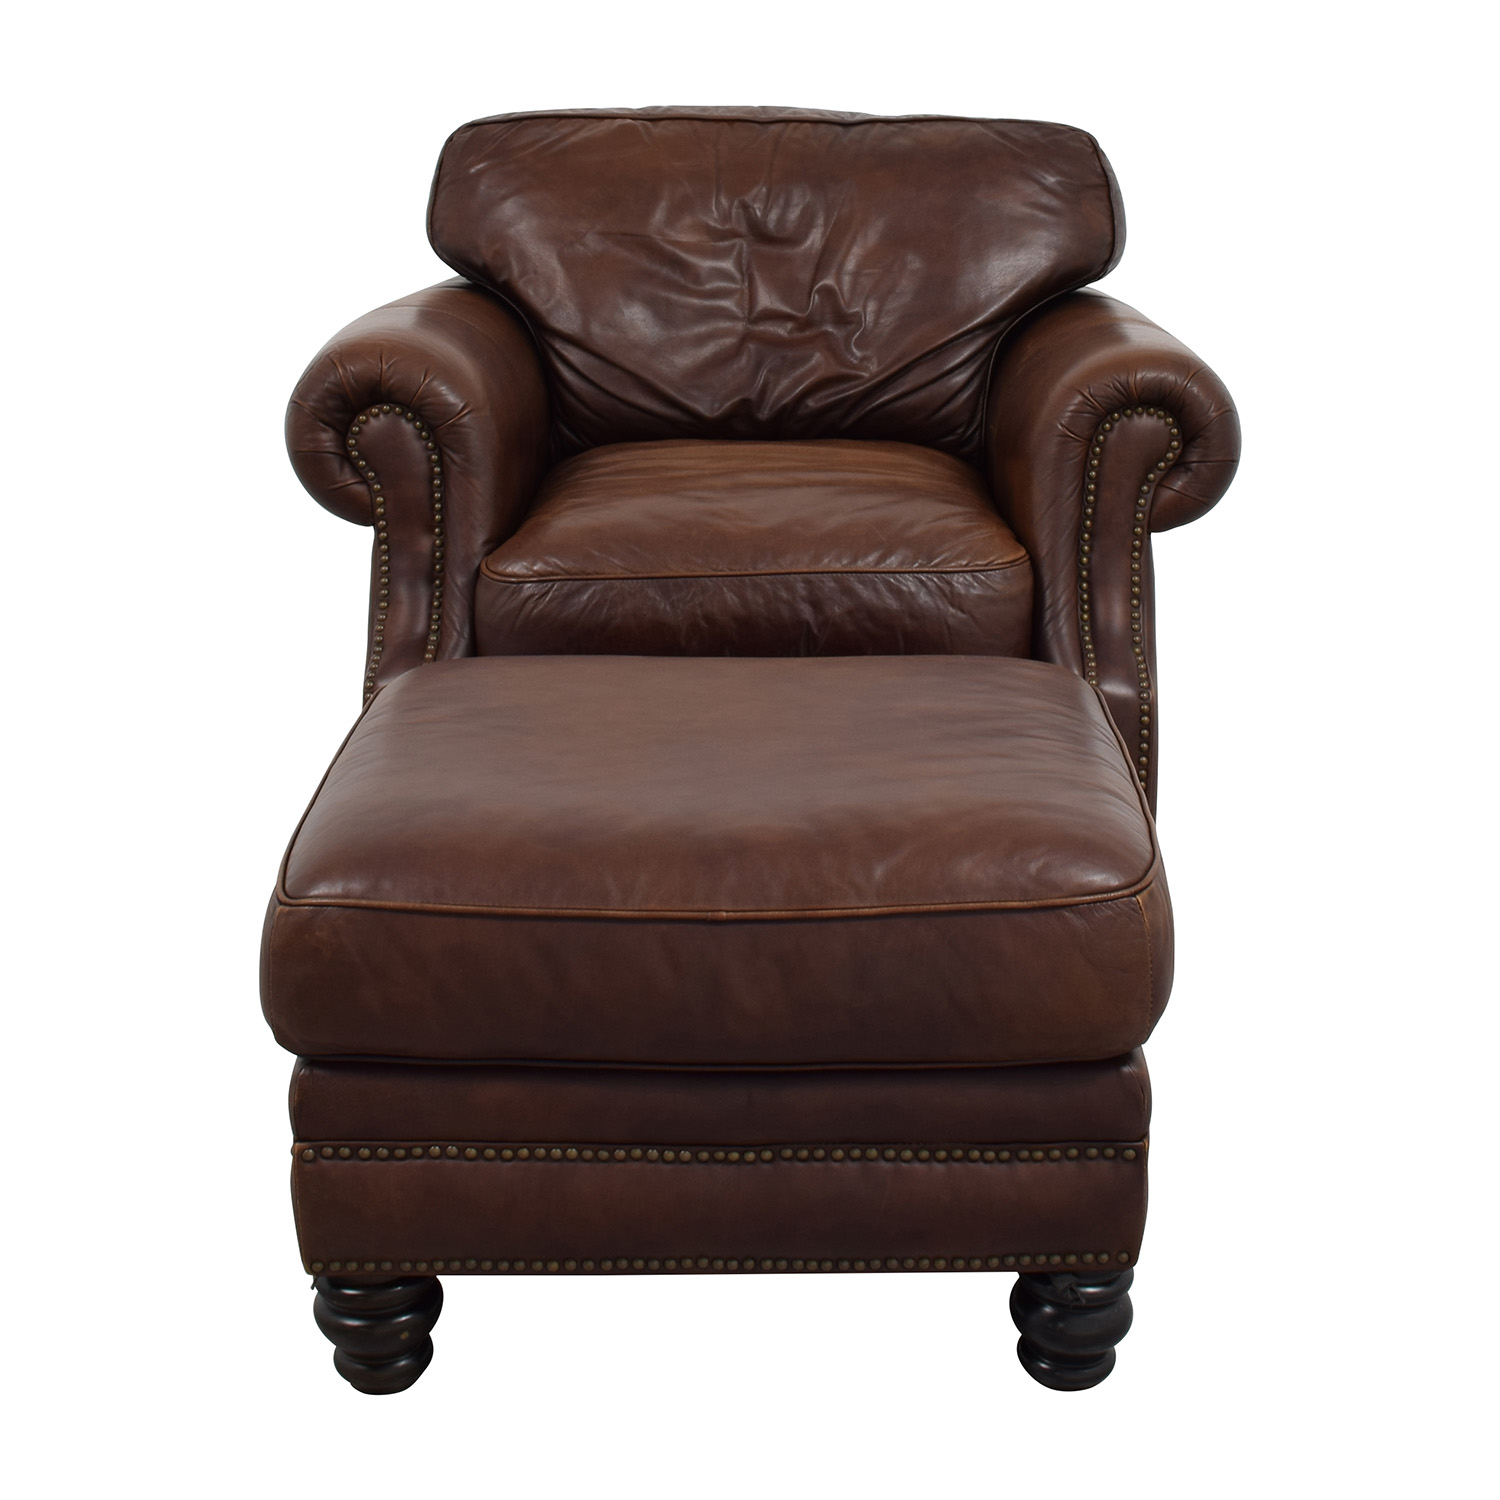 Buy Brown Leather Studded Armchair With Matching Ottoman Chairs ...